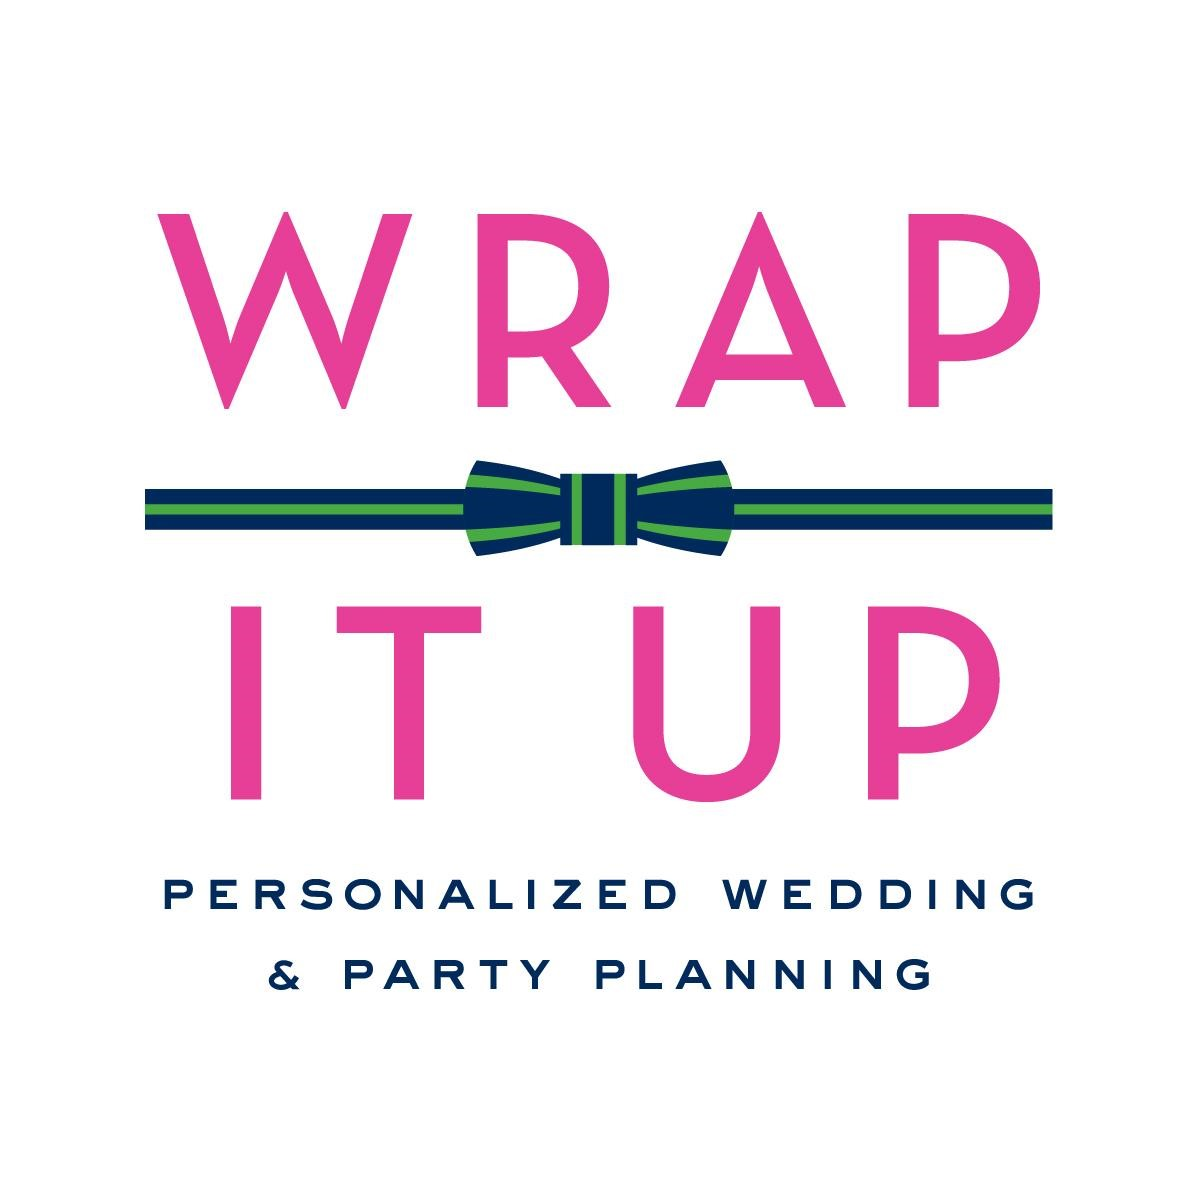 Plan your wedding with Wrap it up